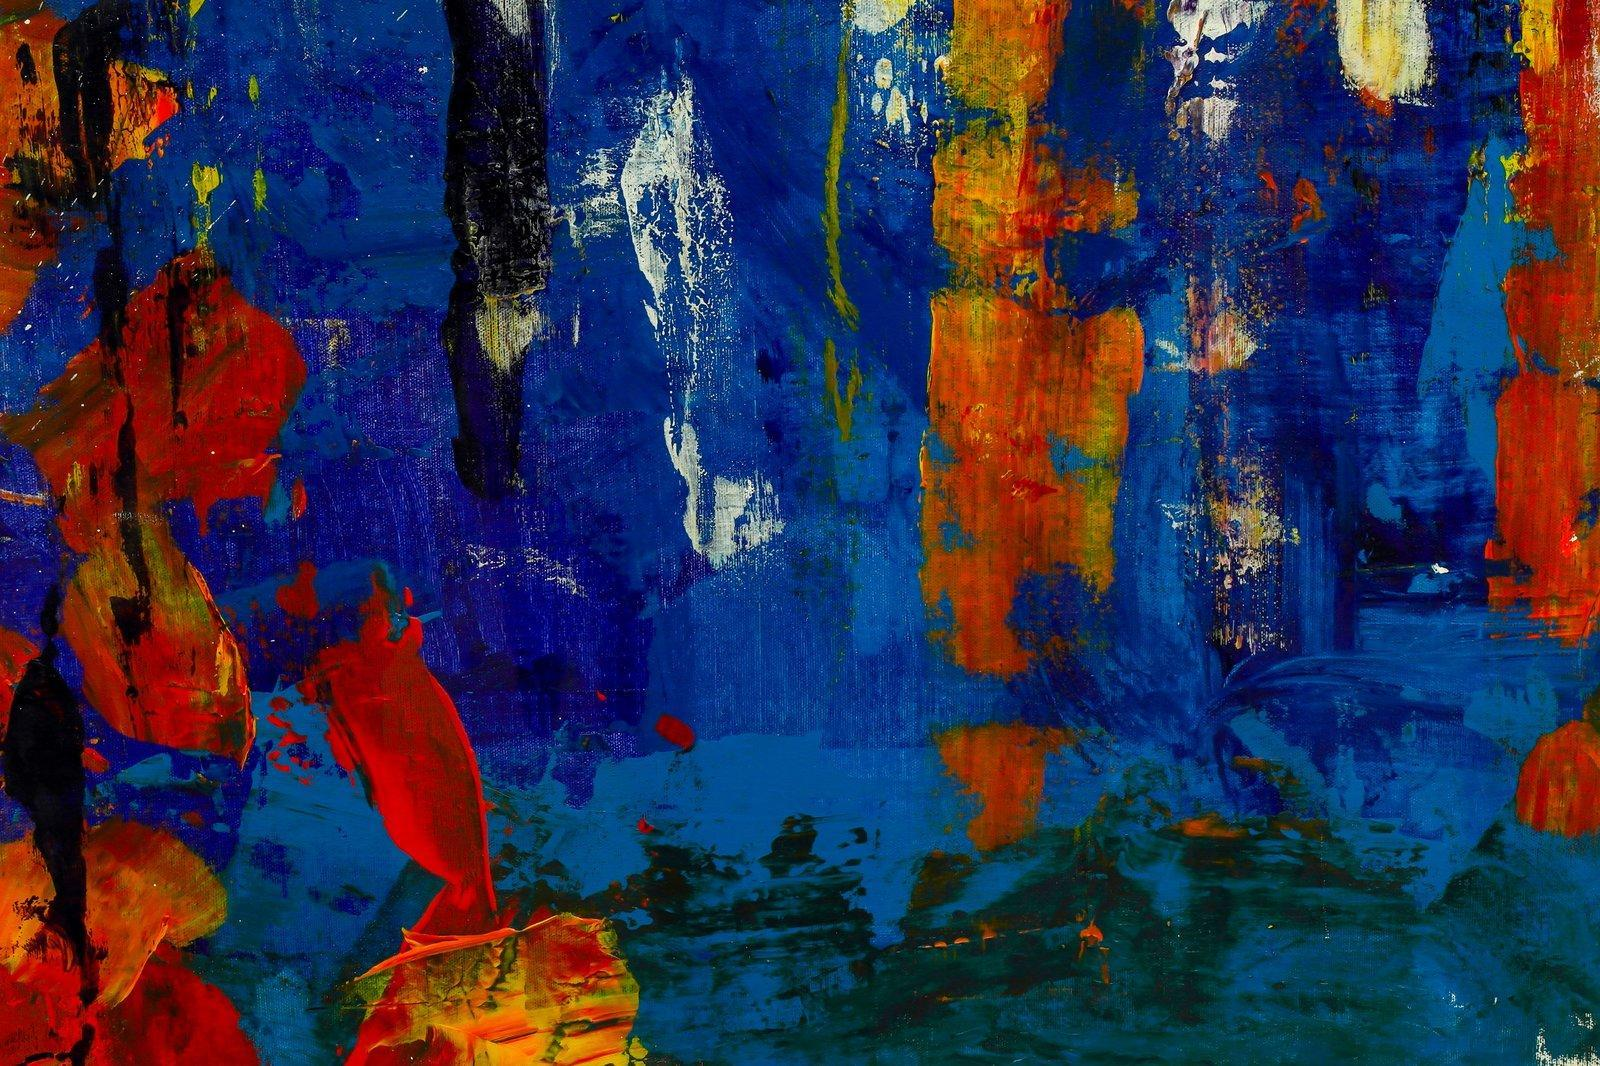 abstract-abstract-expressionism-abstract-painting-2043182